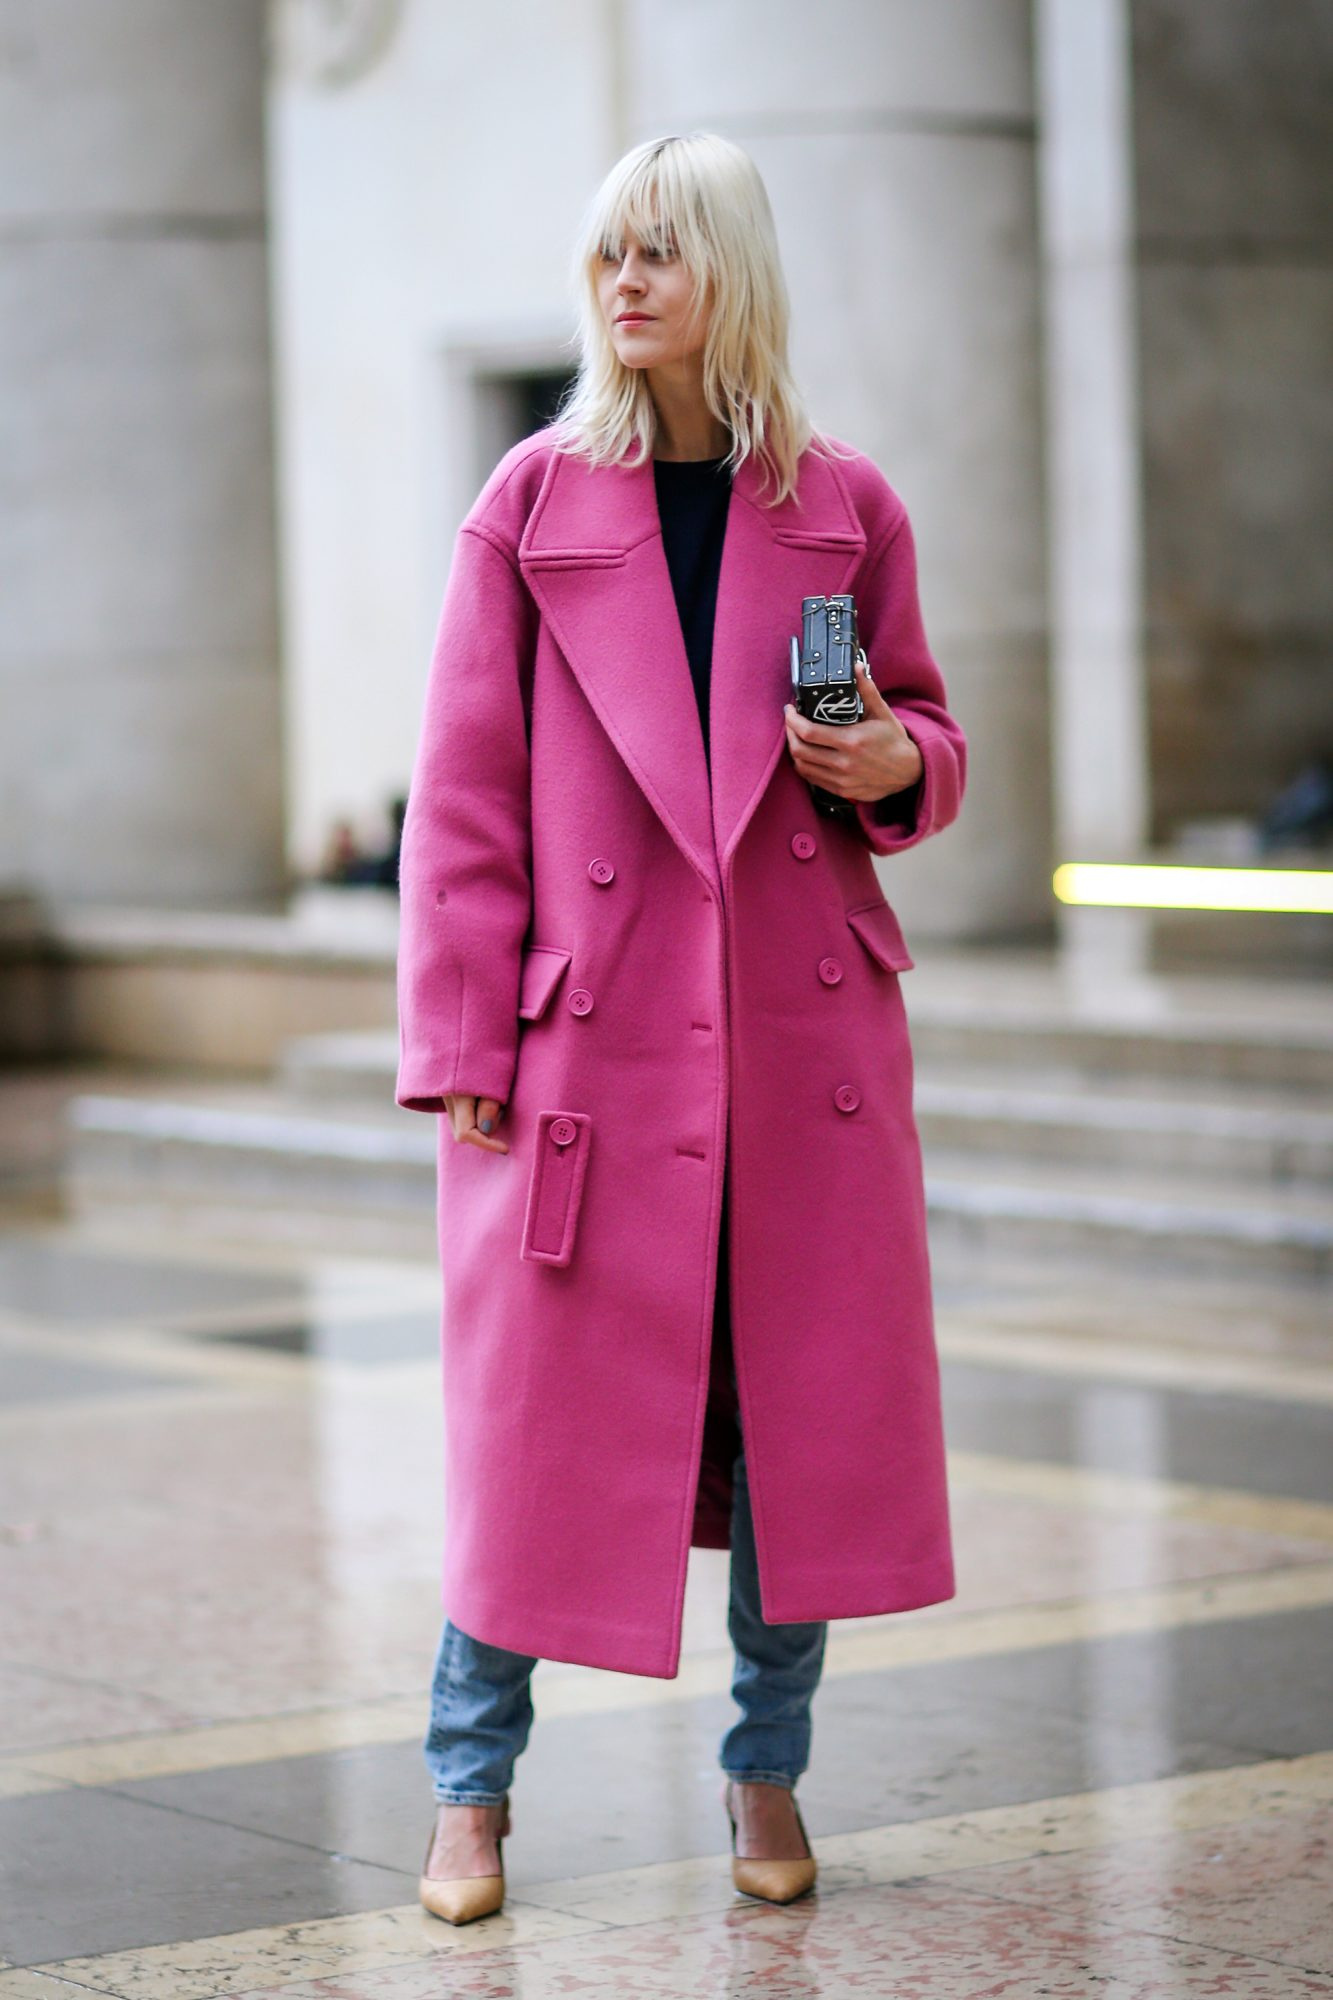 BOLD OUTERWEAR